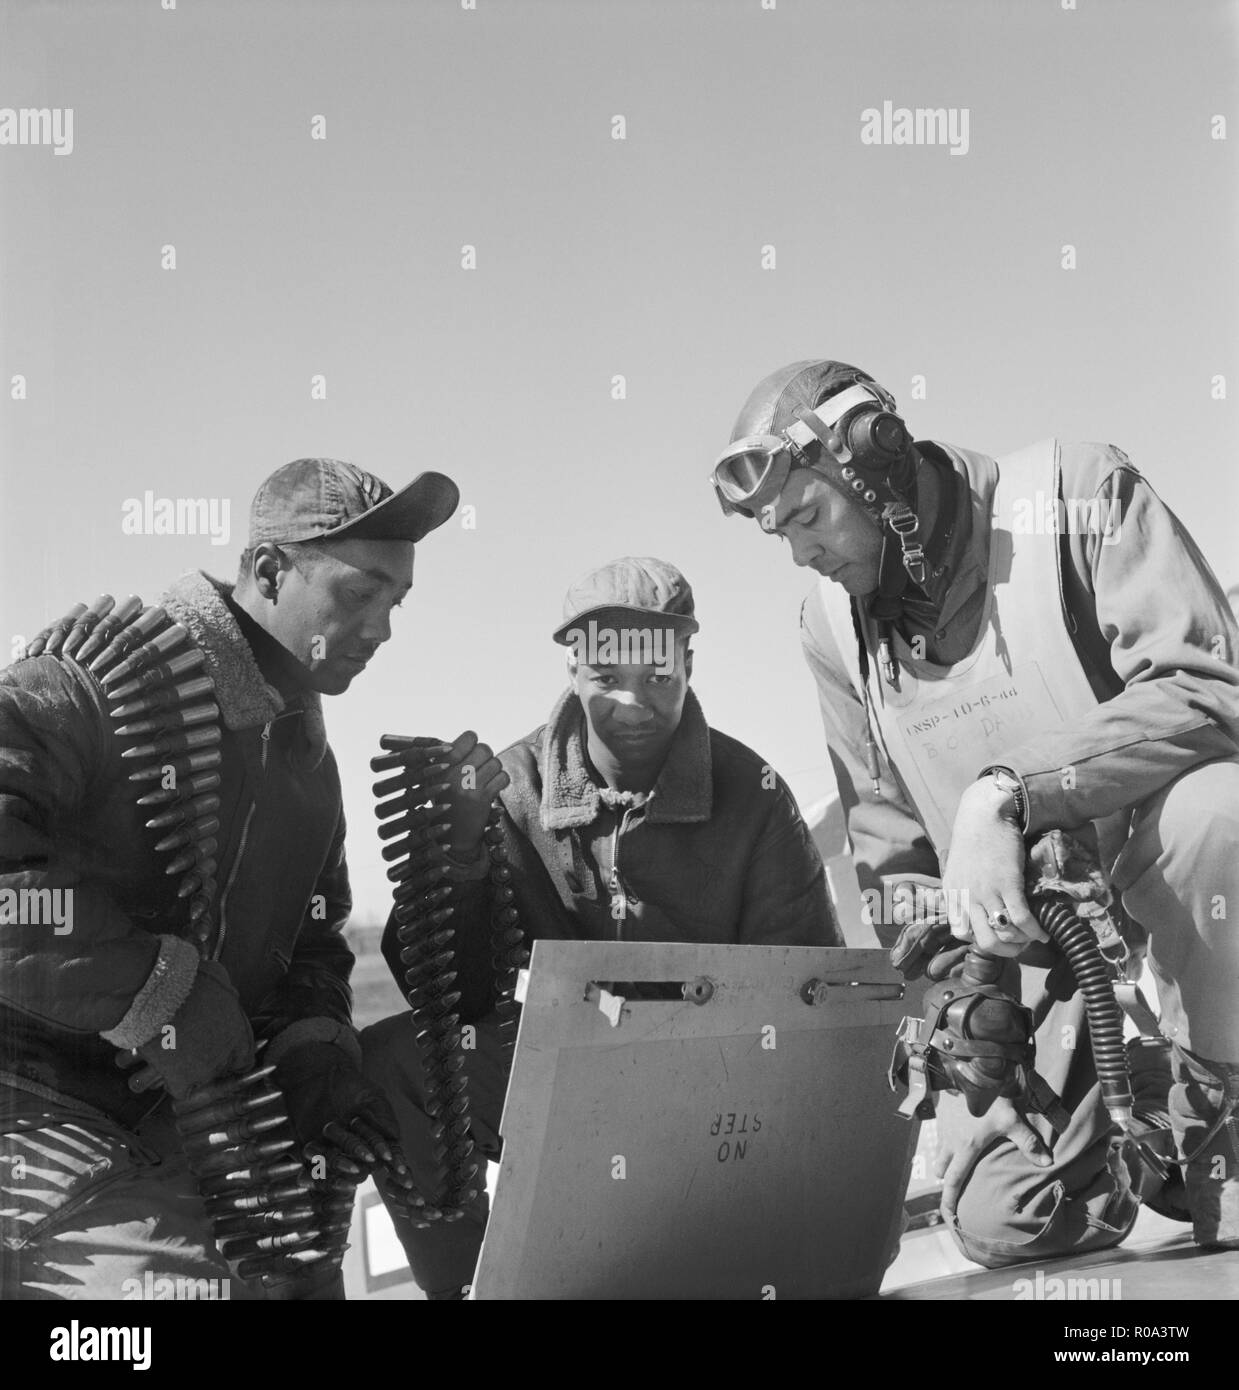 Tuskegee Airmen, left to right, Roscoe C. Brown, New York, NY, Class 44-C; Marcellus G. Smith, Louisville, KY; Col. Benjamin O. Davis, Ramitelli, Italy, Toni Frissell, March 1945 - Stock Image